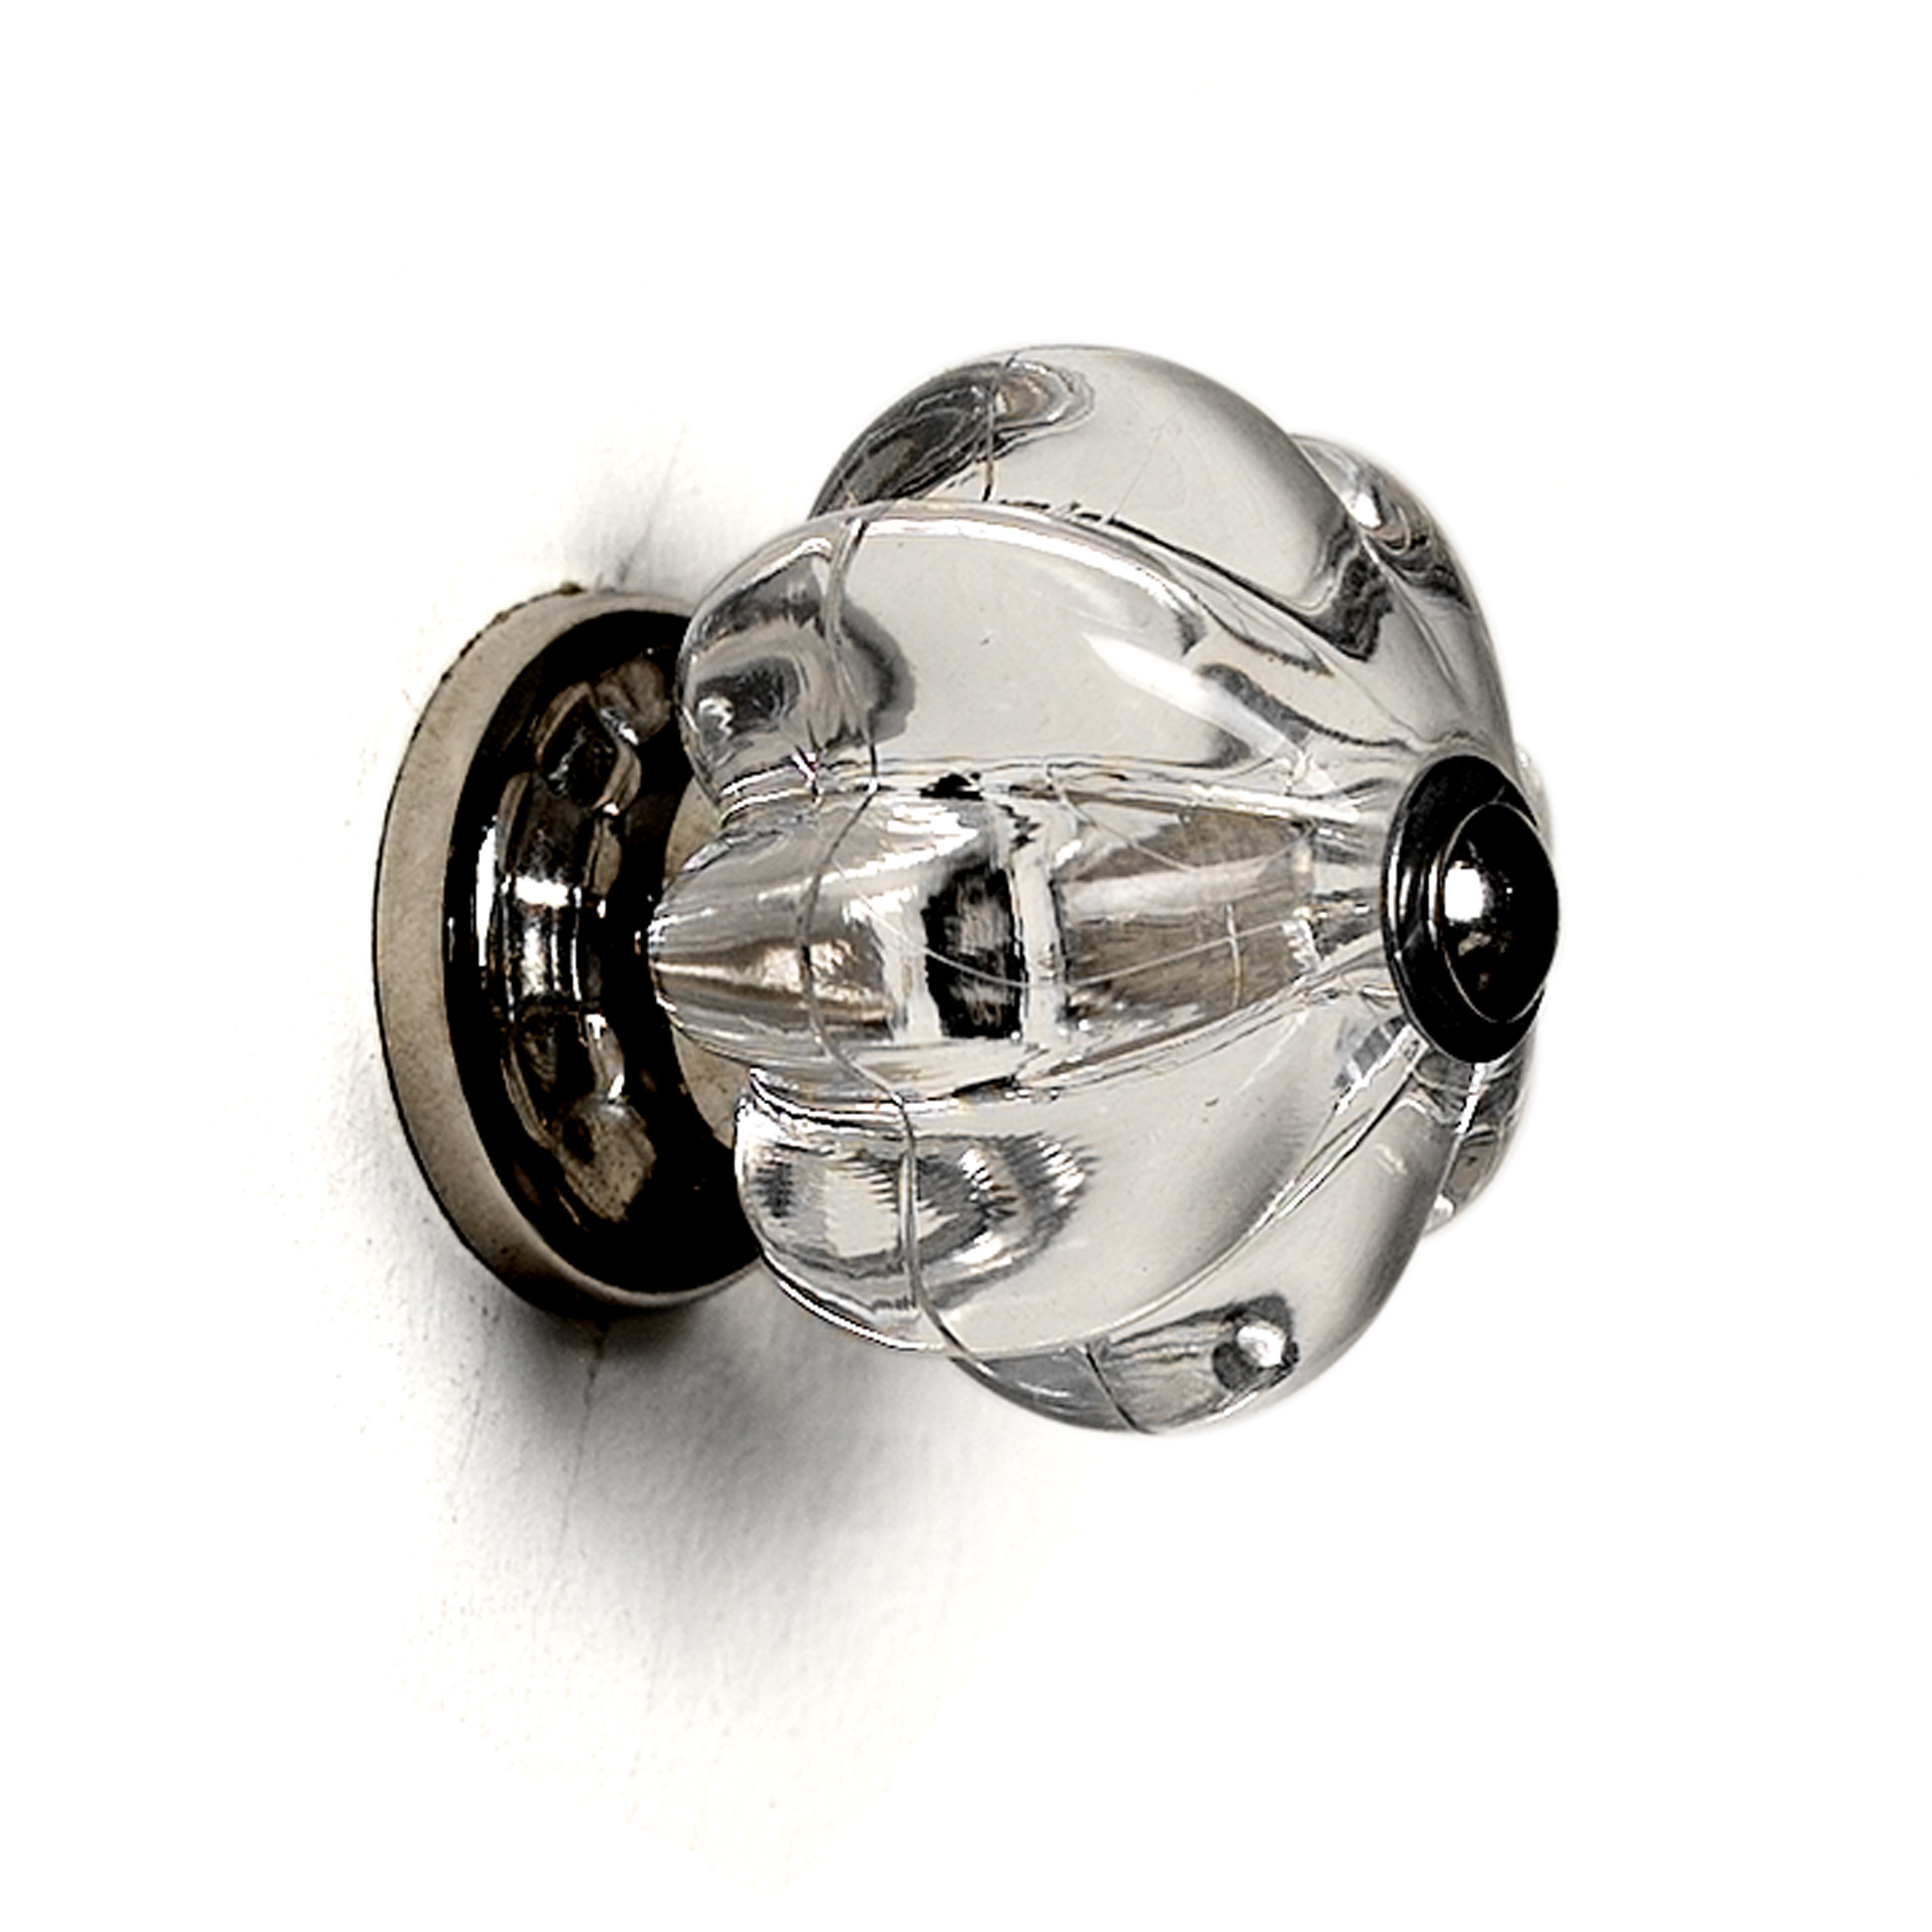 acrylic door knob photo - 10